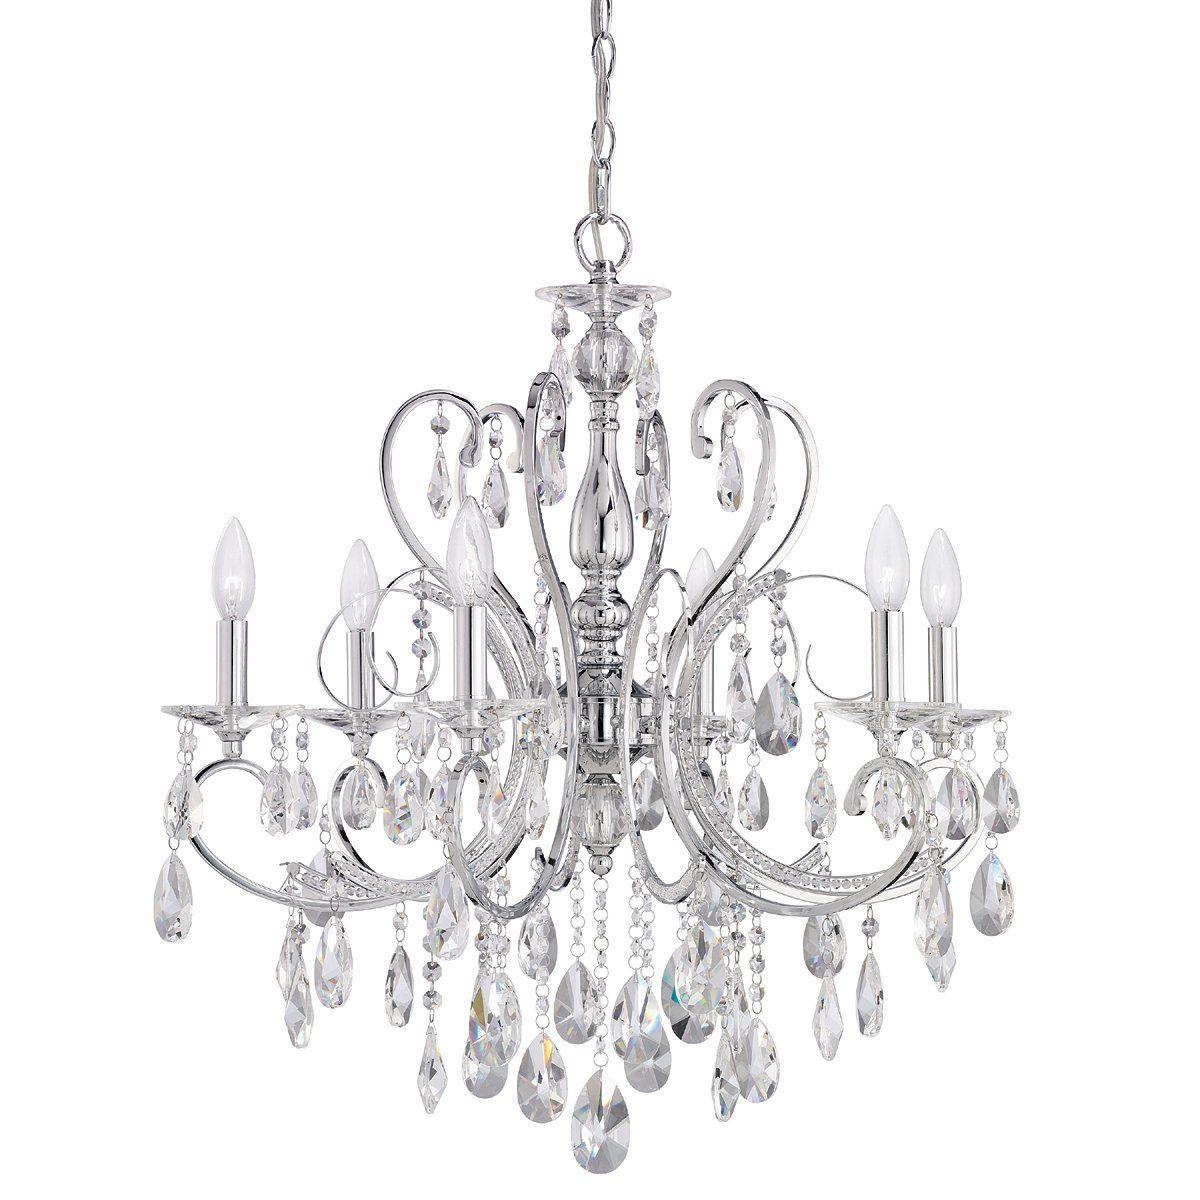 Crystal Candle Chandelier Lighting 6 Lights Pendant Ceiling Fixture Lamp 22